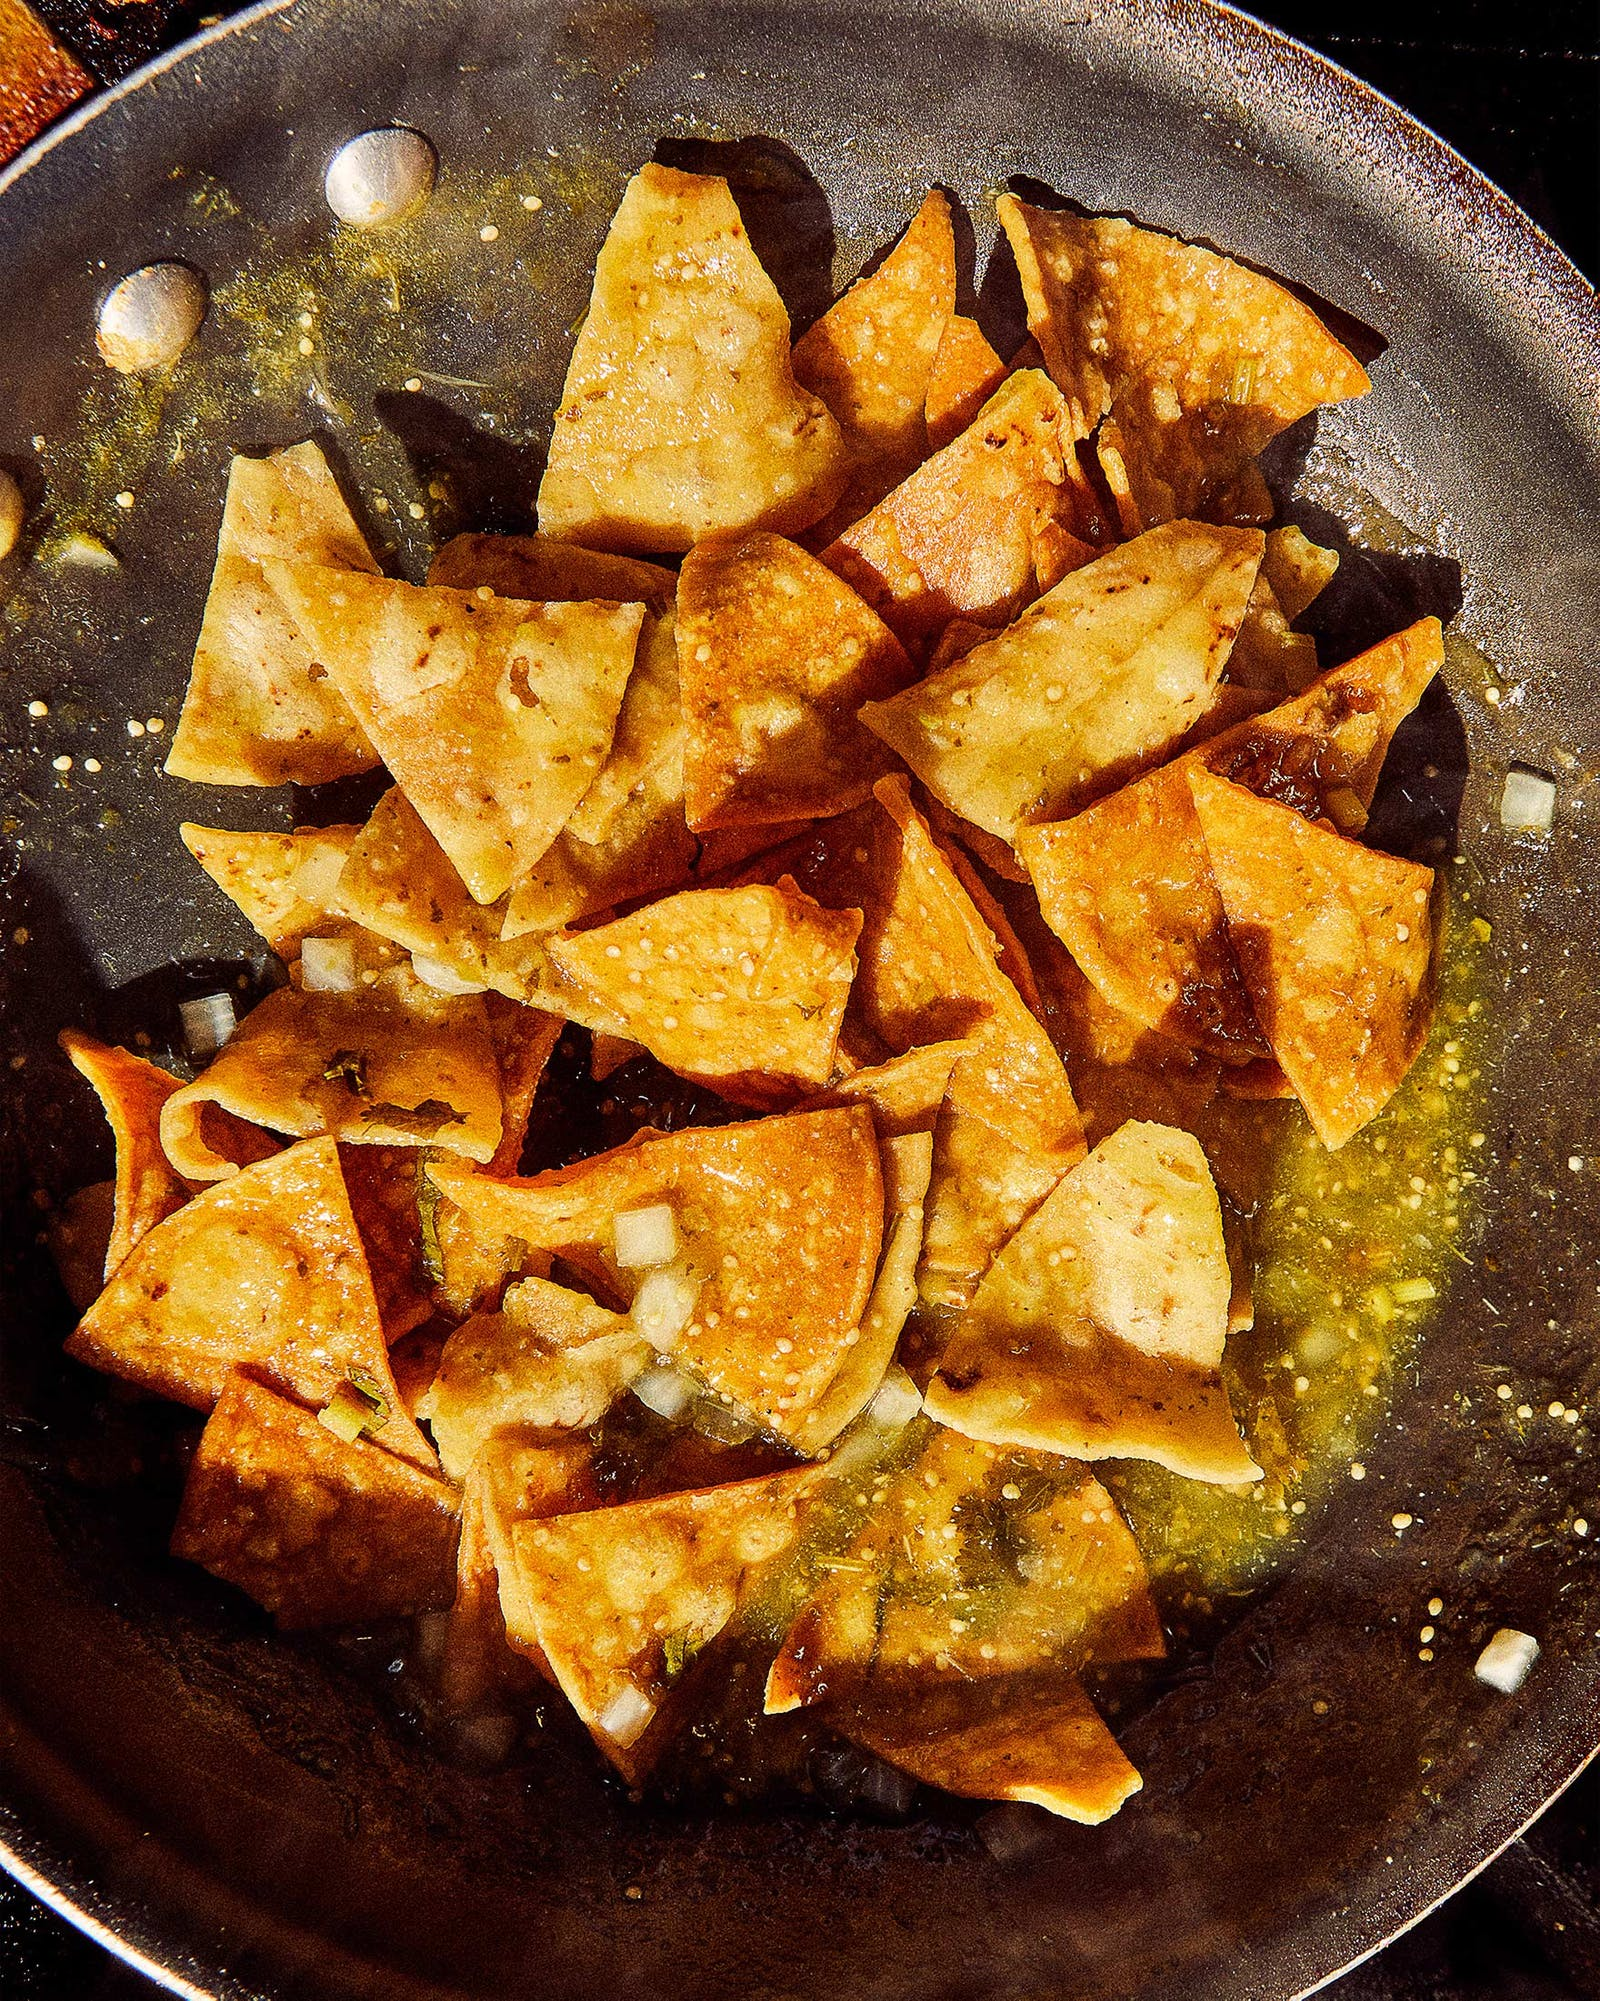 Tortilla chips and salsa are prepped for chilaquiles in a pan at Tía Dora's Bakery.